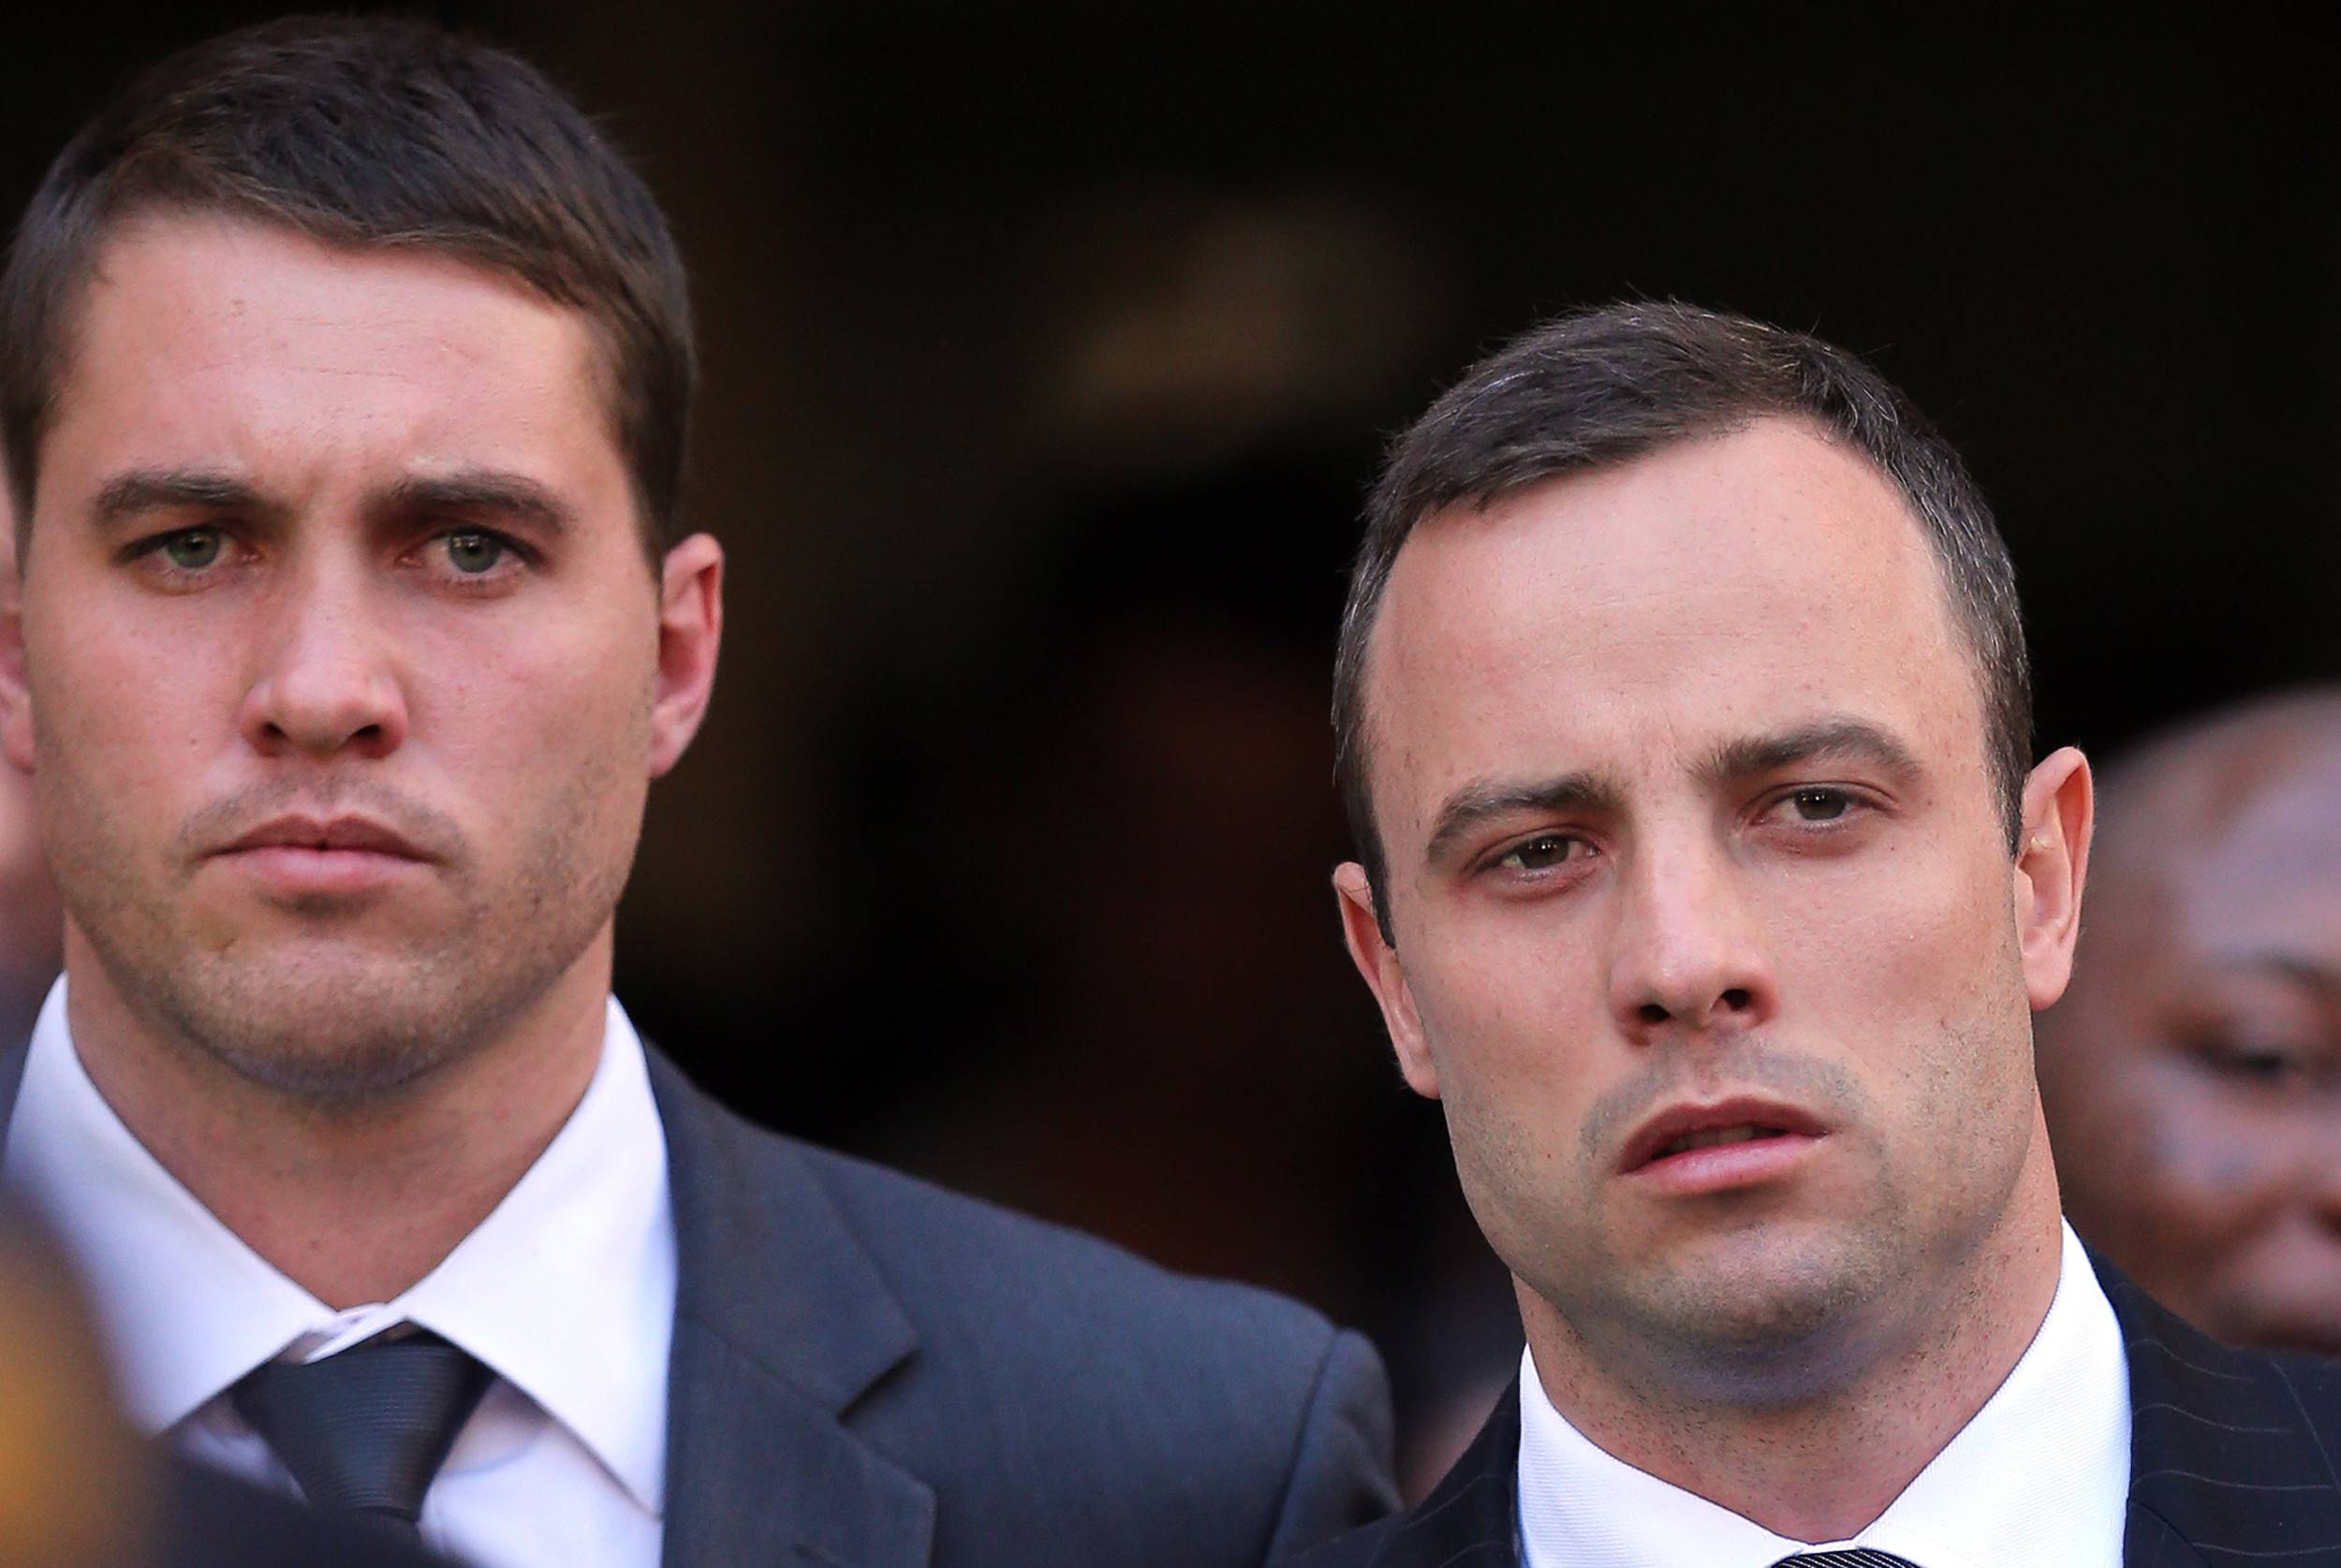 Oscar Pistorius, right, leaves the high court in Pretoria, South Africa, Thursday. The prosecution in Paralympic athlete's murder trial said he was lying and adapting his version of events on the morning he shot his model girlfriend Reeva Steenkamp to line up with the evidence.